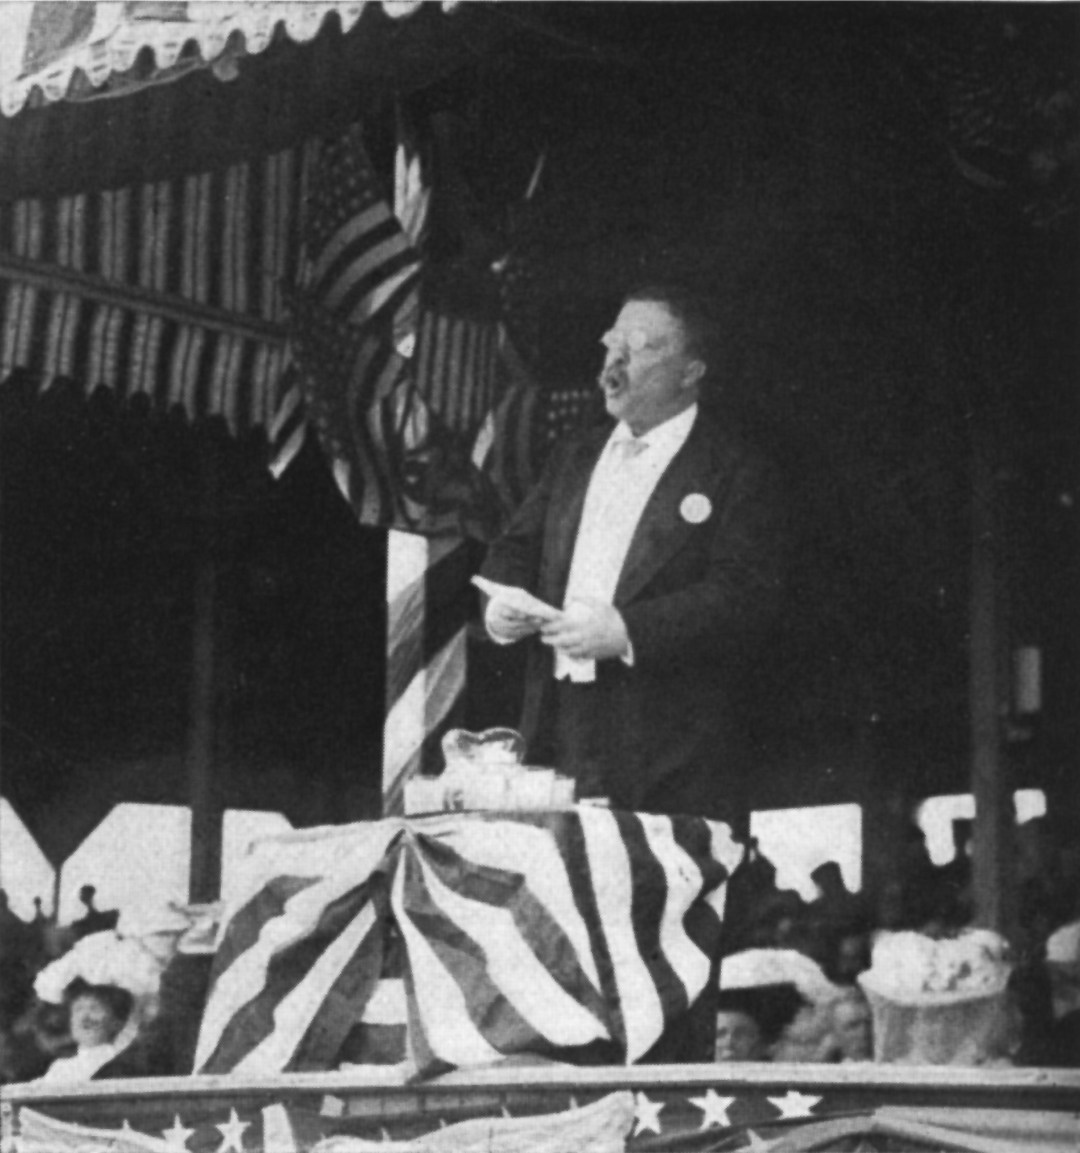 07MCJamestown Exposition00019PH - President Theodore Roosevelt copy